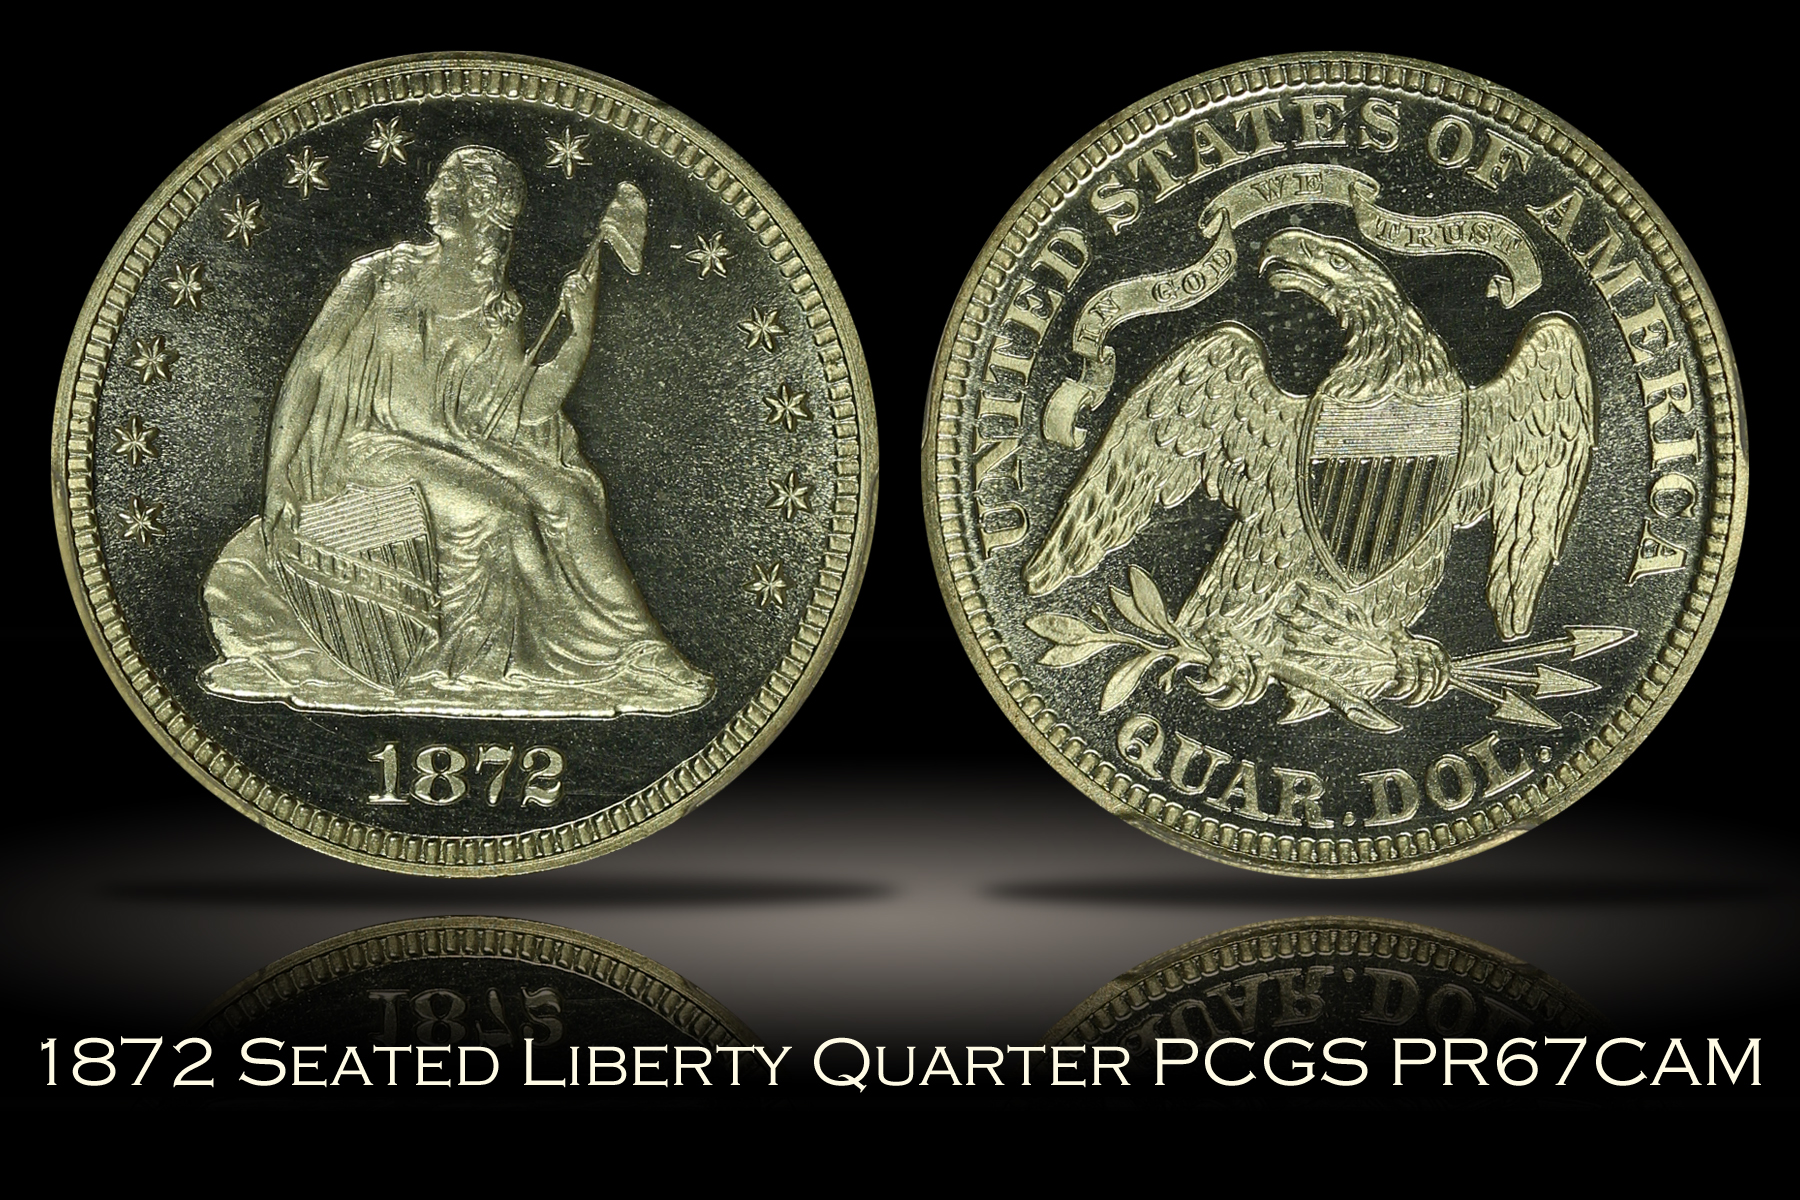 1872 Proof Seated Liberty Quarter PCGS PR67CAM